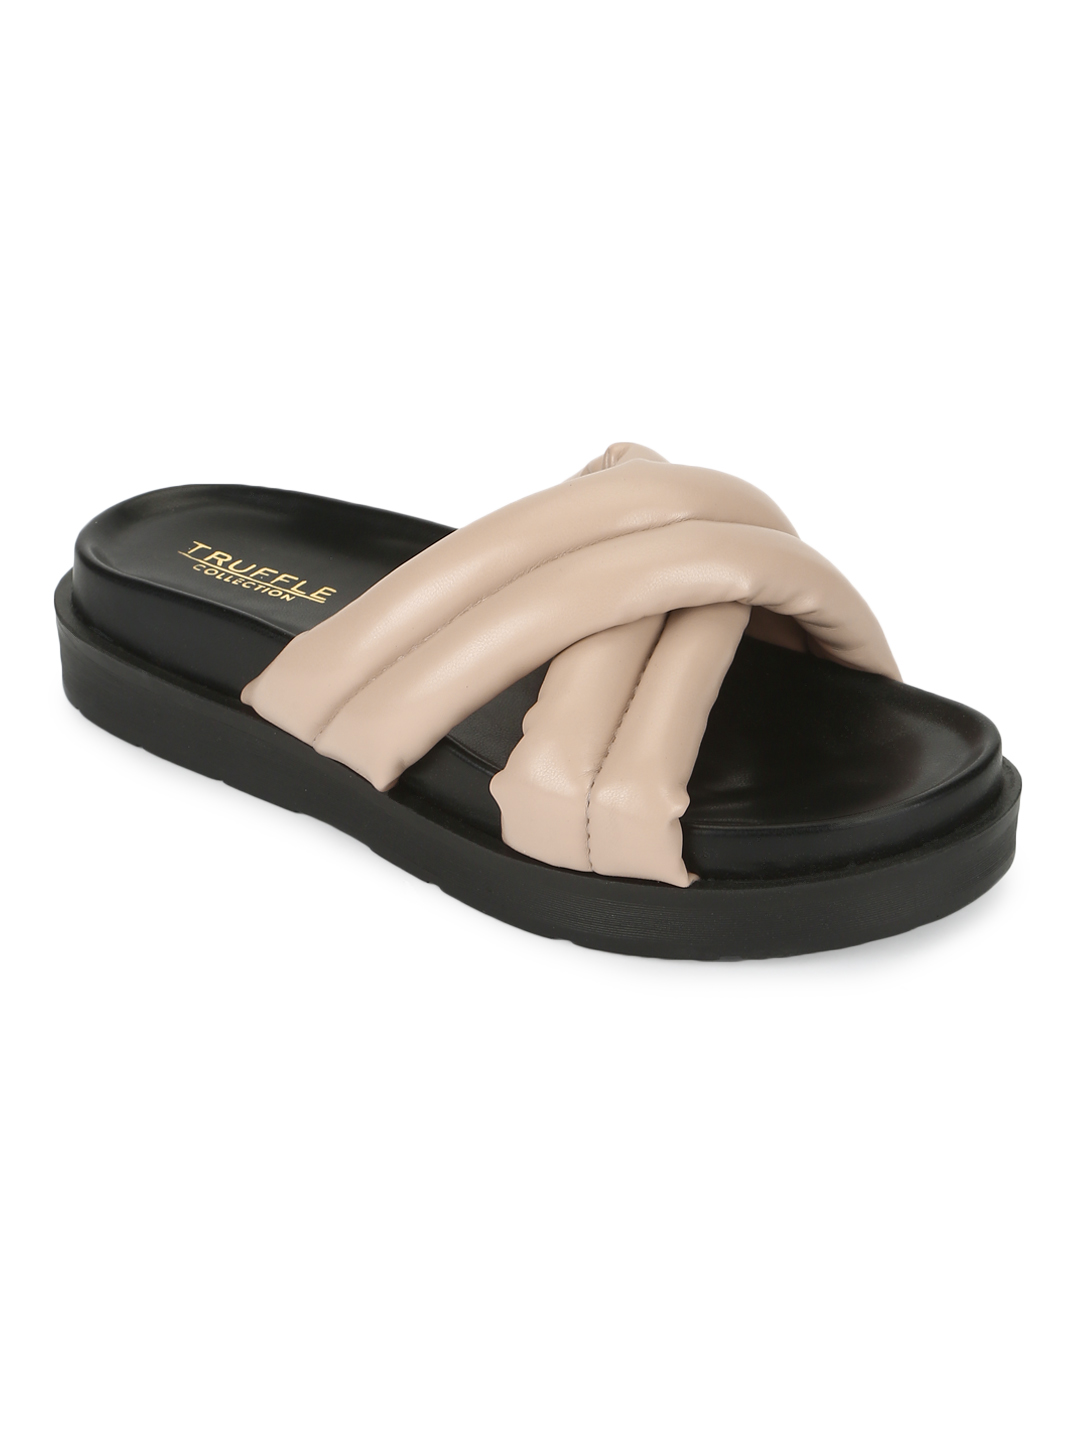 Truffle Collection | Truffle Collection Nude PU Crisscross Quilted Slides